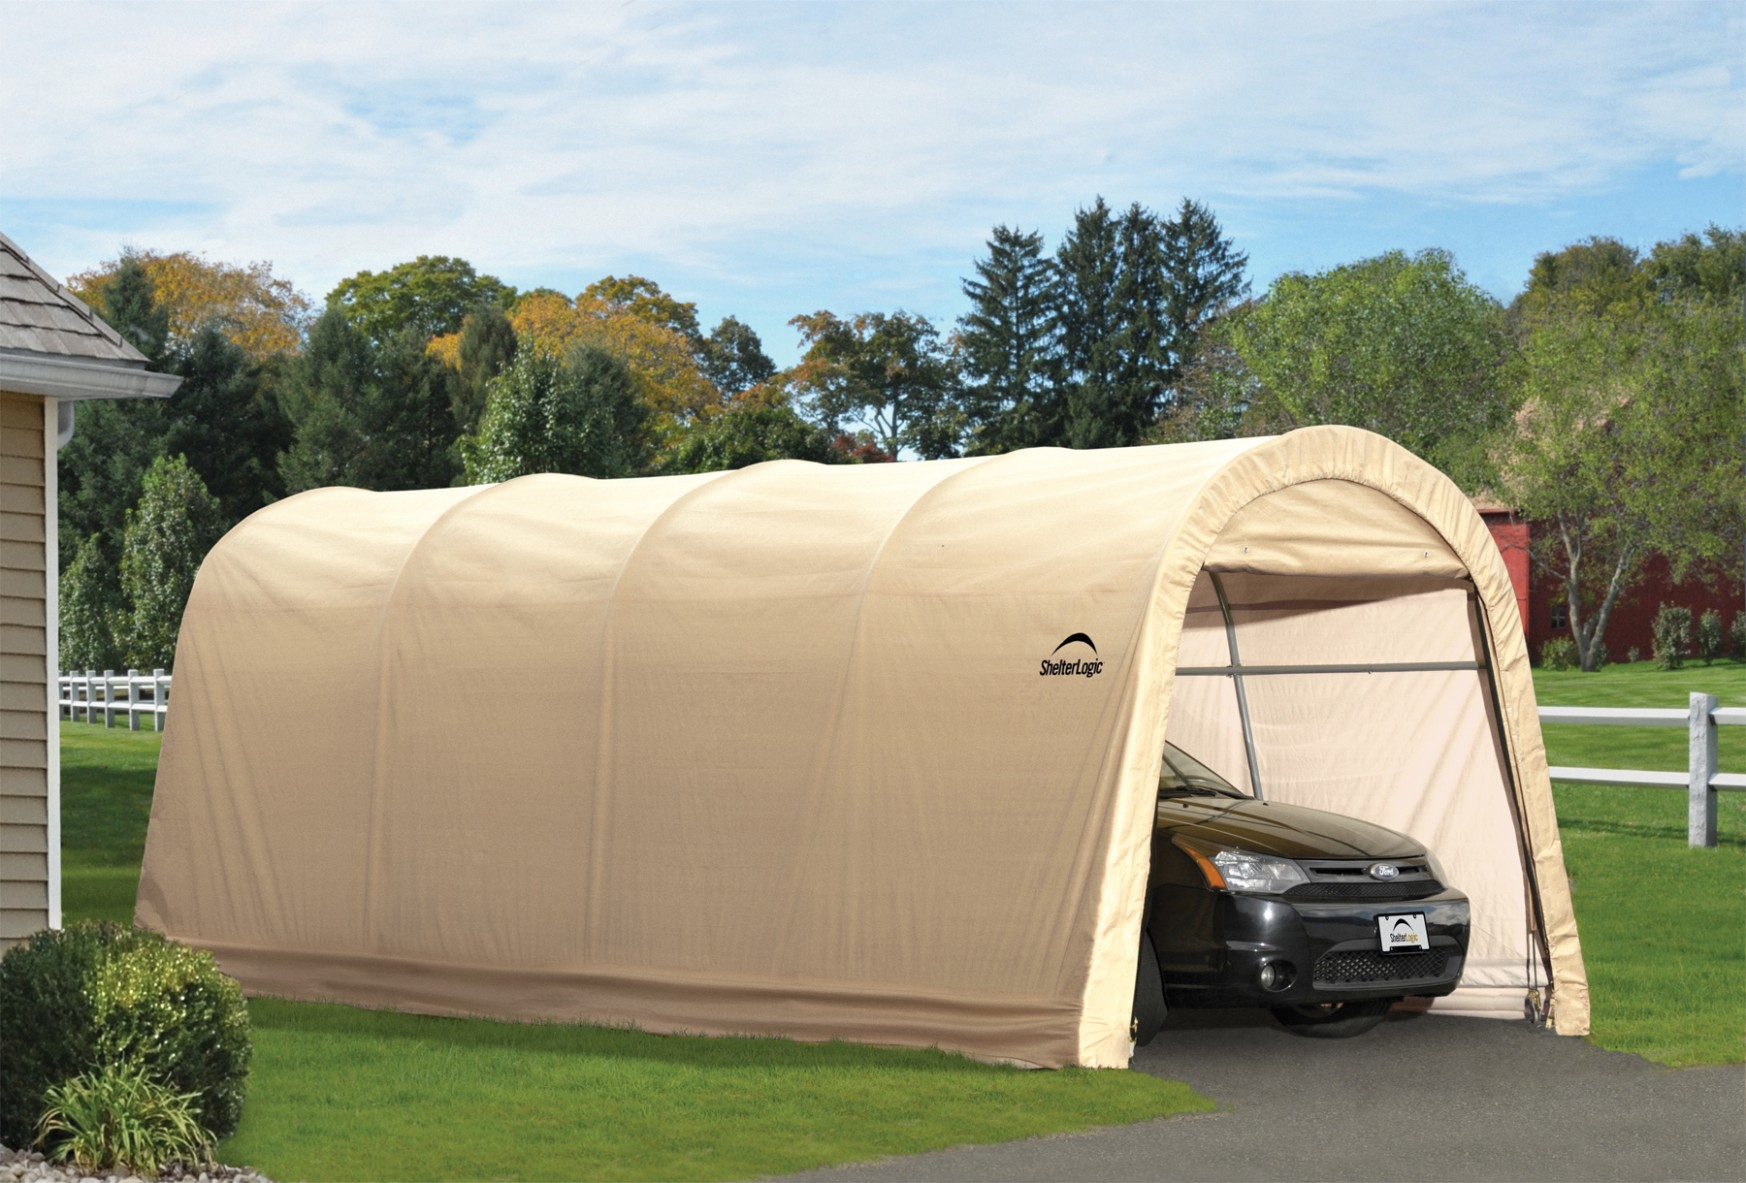 You Will Never Believe These Bizarre Truth Behind Metal Steel Carport Shelter Garage Canopy | metal steel carport shelter garage canopy